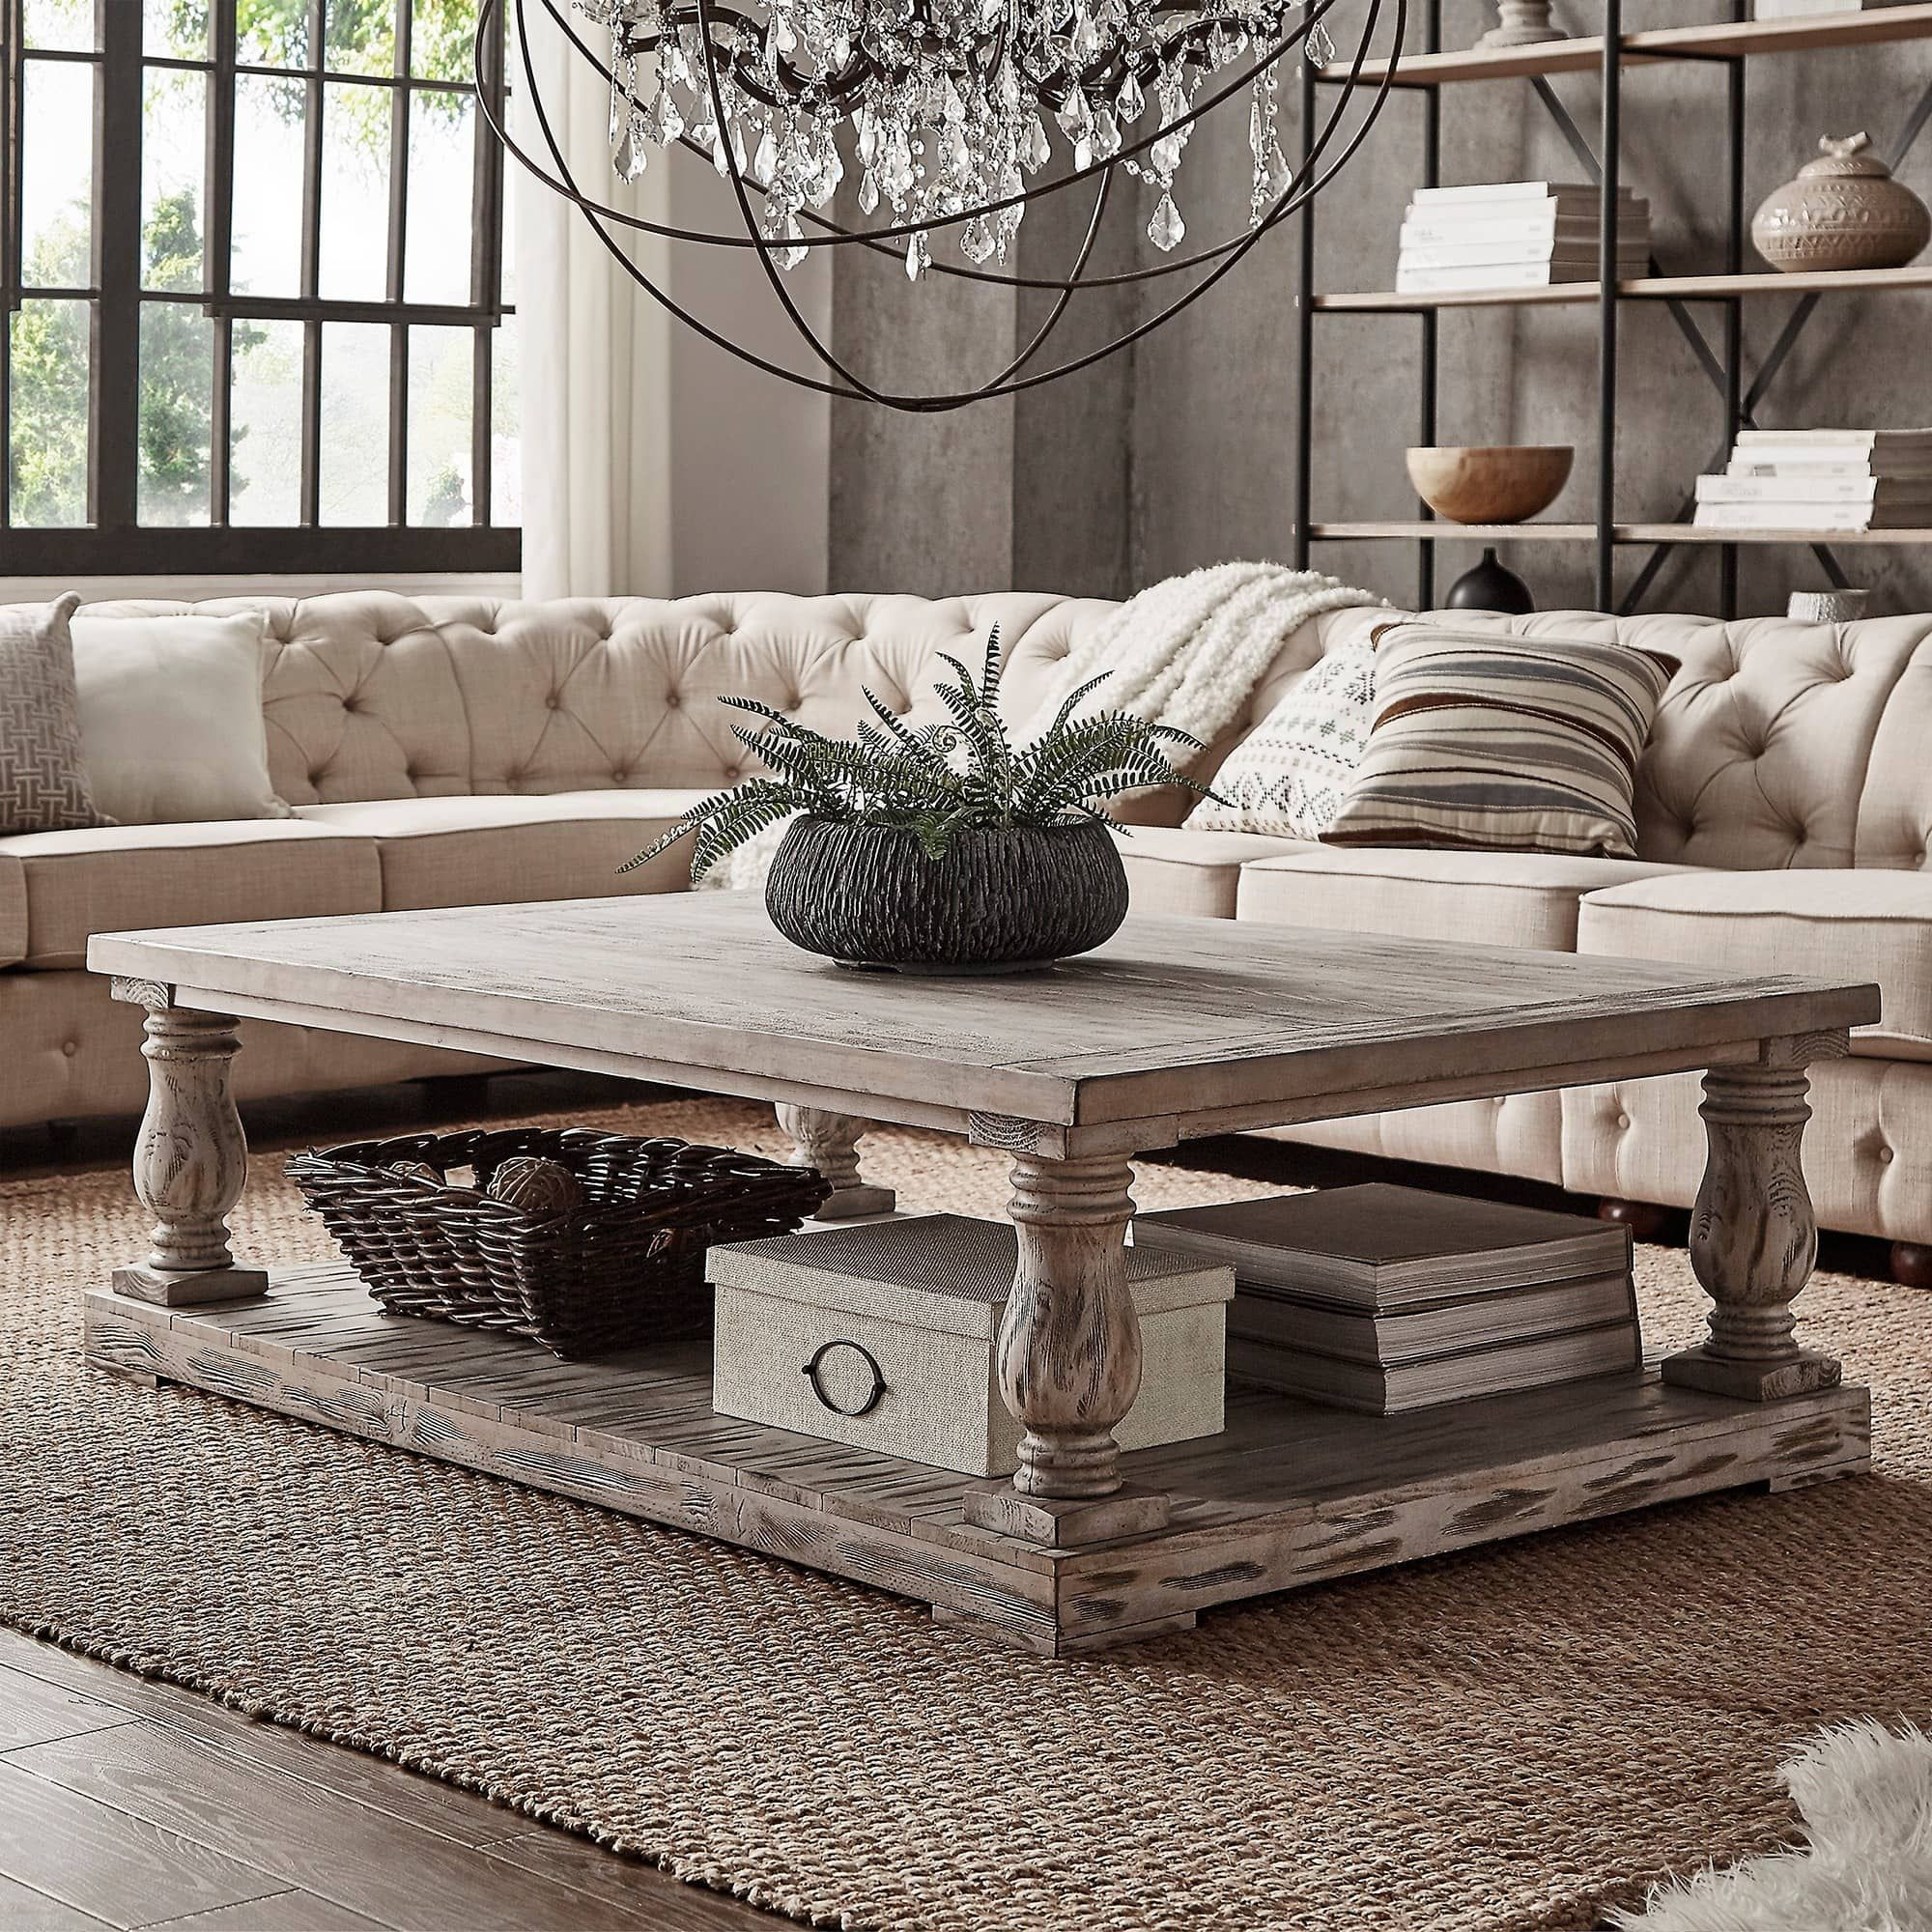 9 Awesome Living Room Design Ideas: Edmaire Rustic Baluster 60-inch Coffee Table By INSPIRE Q